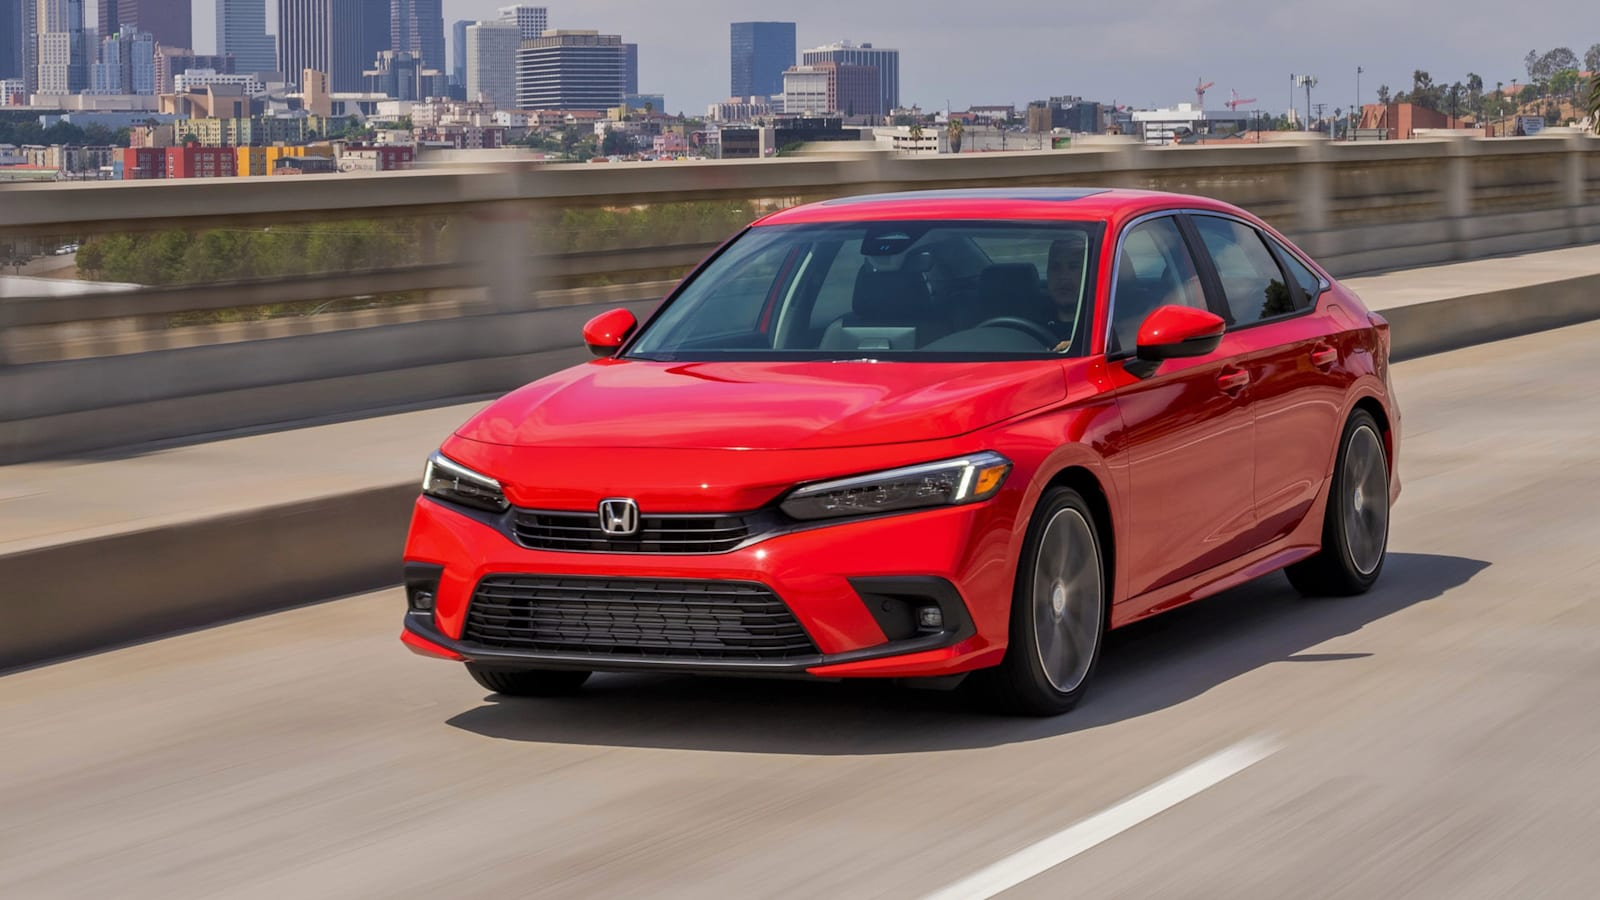 2022 Honda Civic Touring in Red